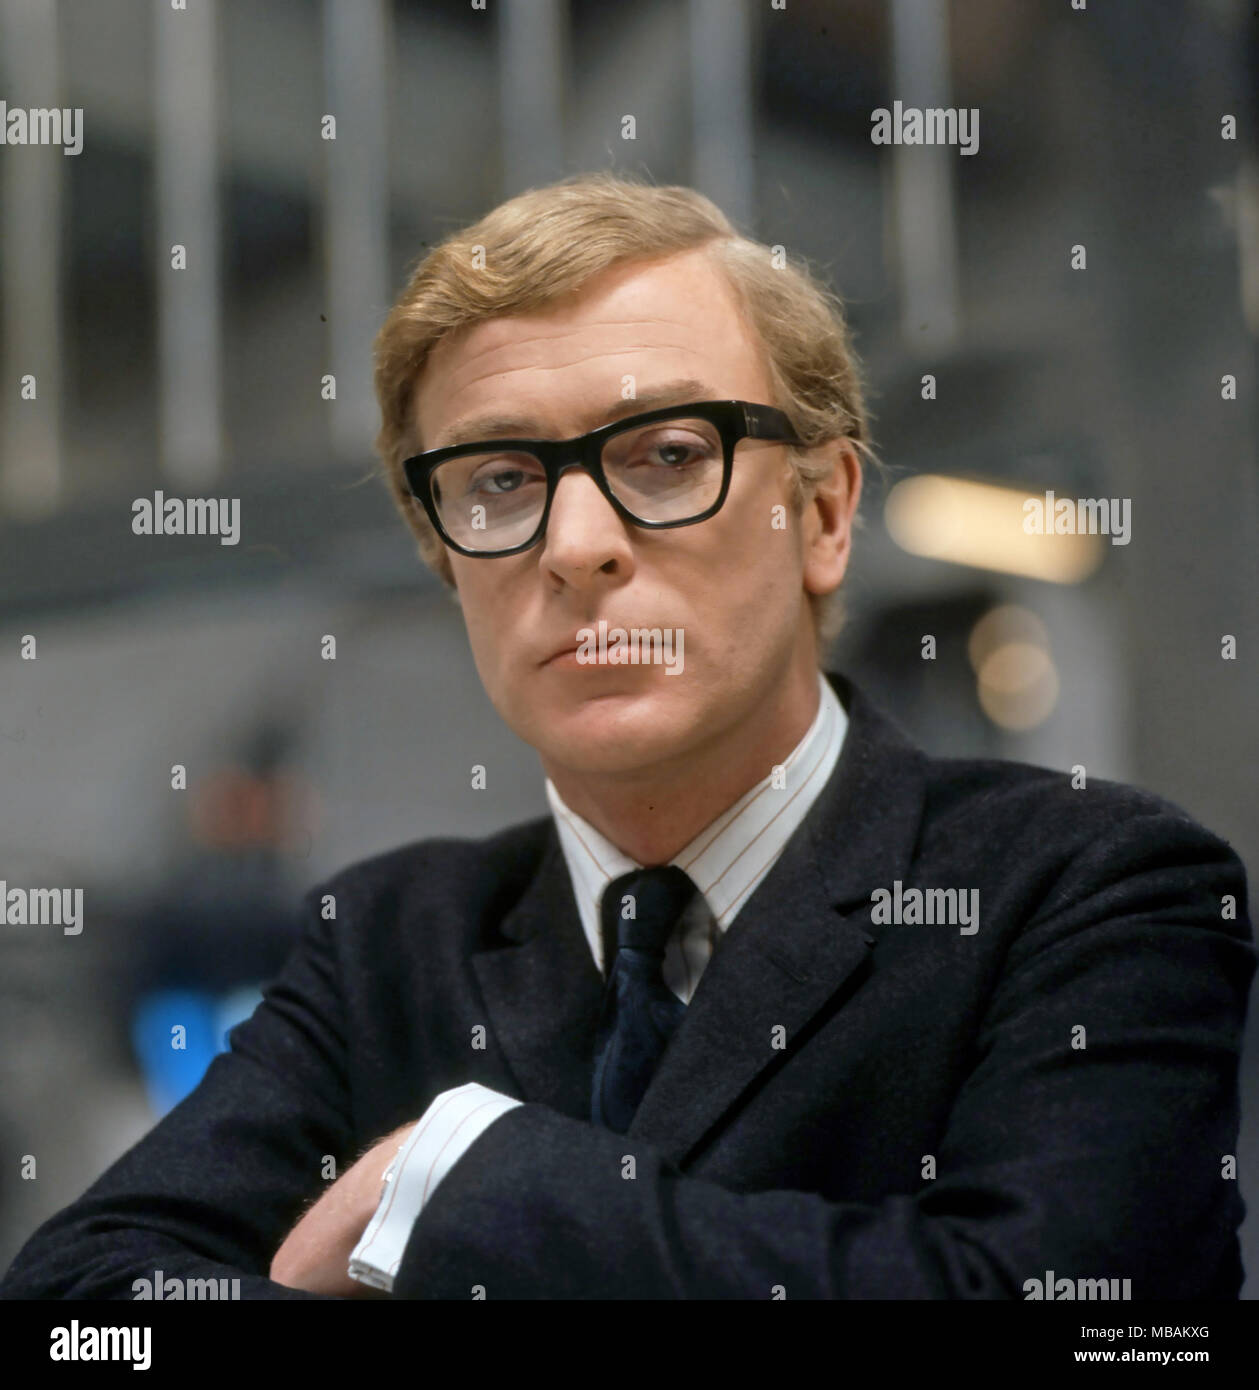 Michael Caine Glasses Stock Photos Michael Caine Glasses Stock